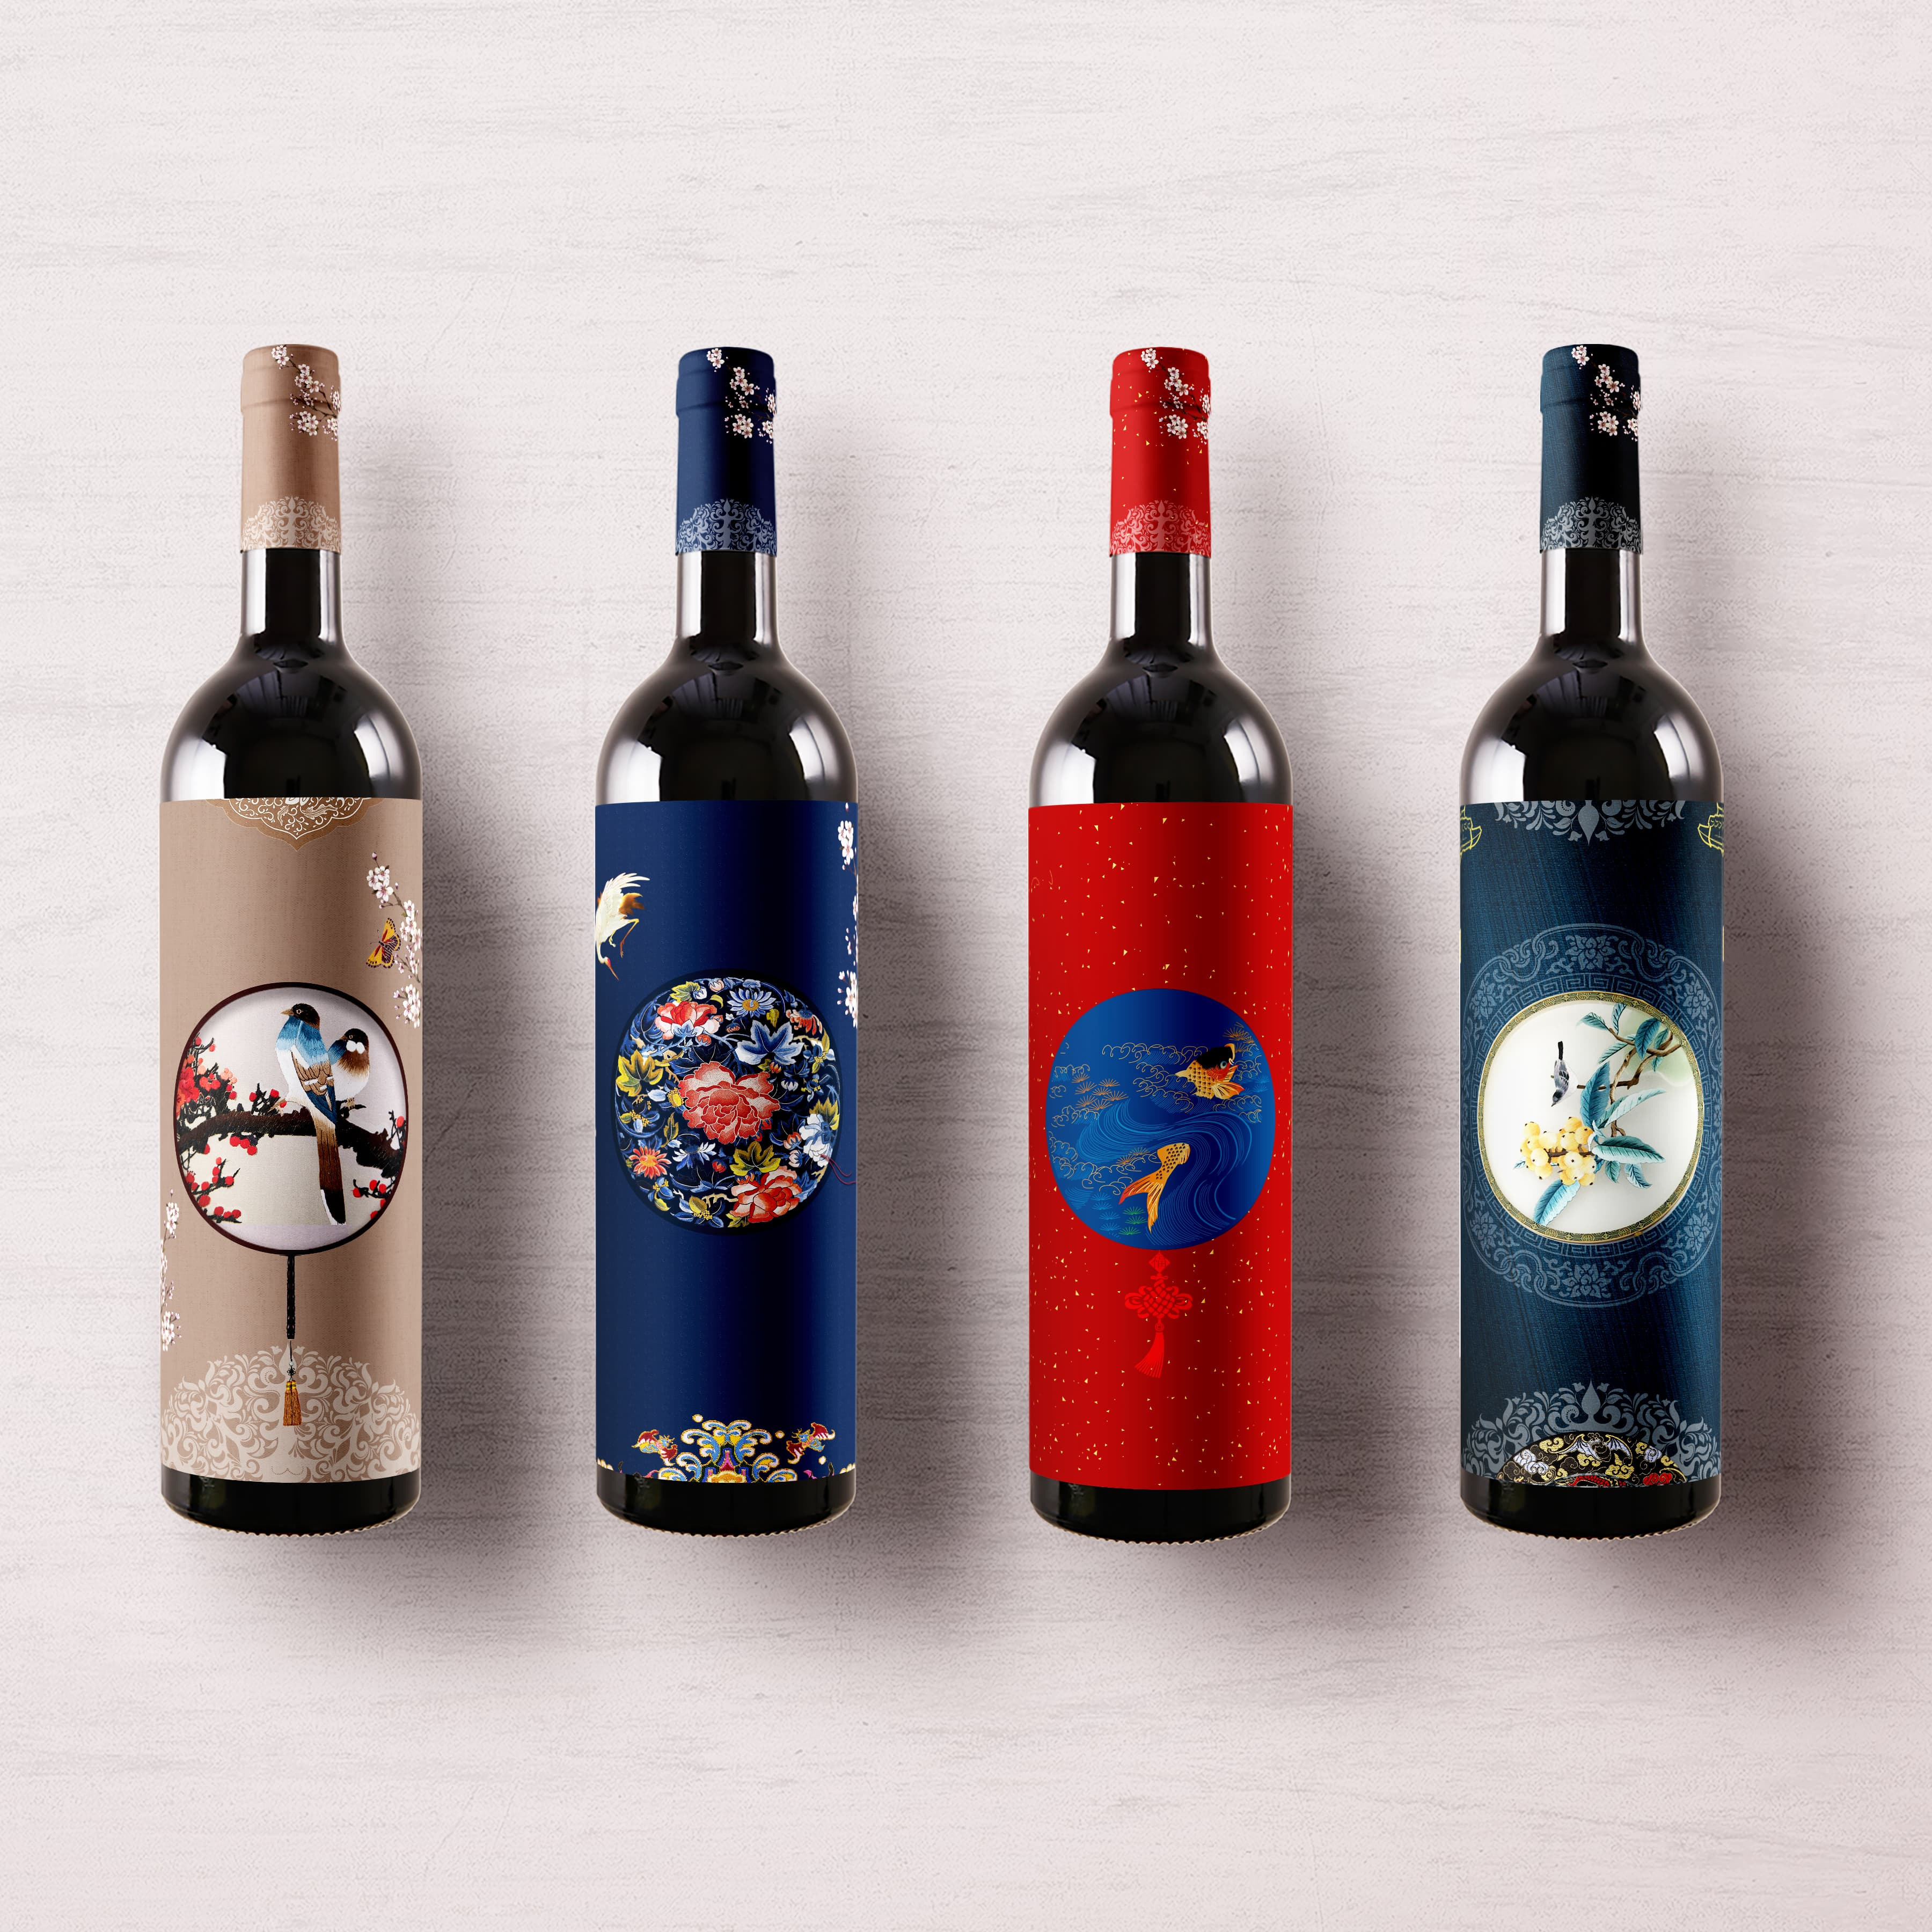 Min Lu Creates Imperial Palaces Premium Wine Collection Packaging